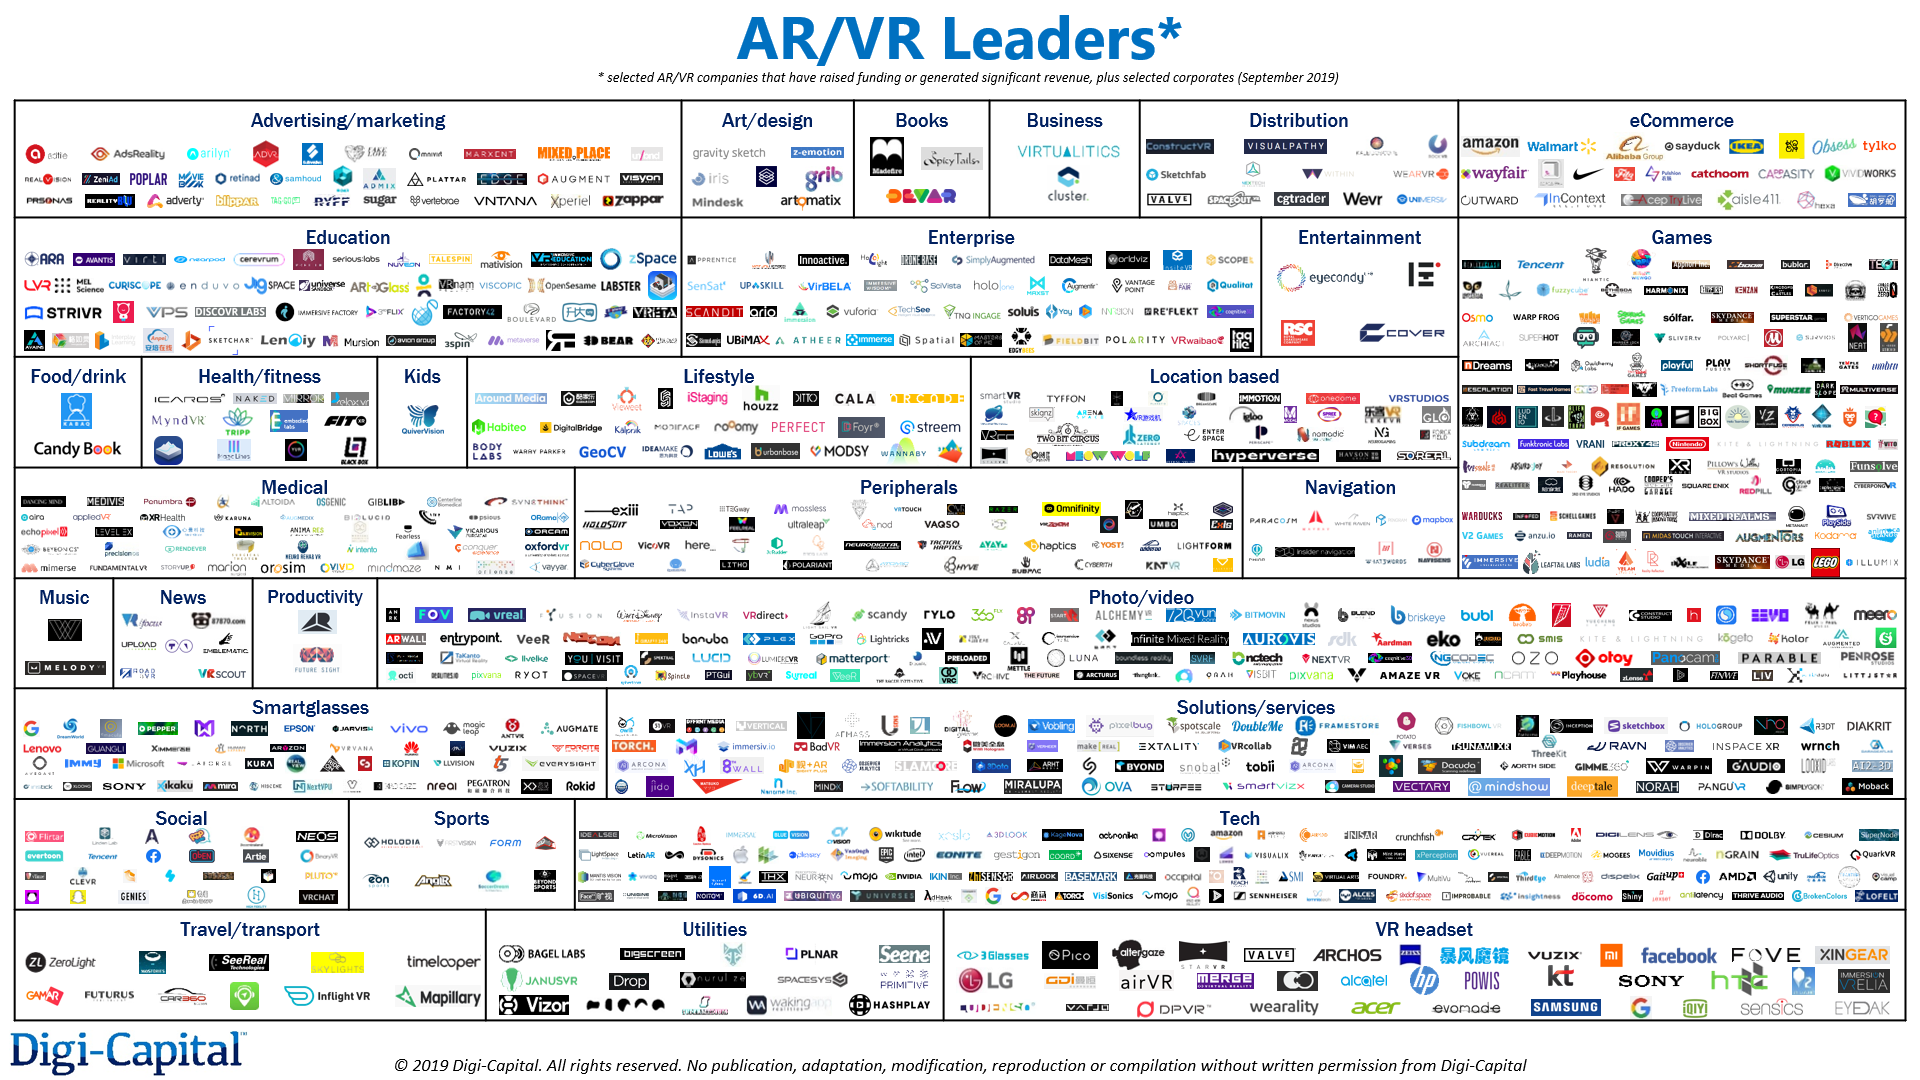 VR/AR startup valuations reach $45 billion (...